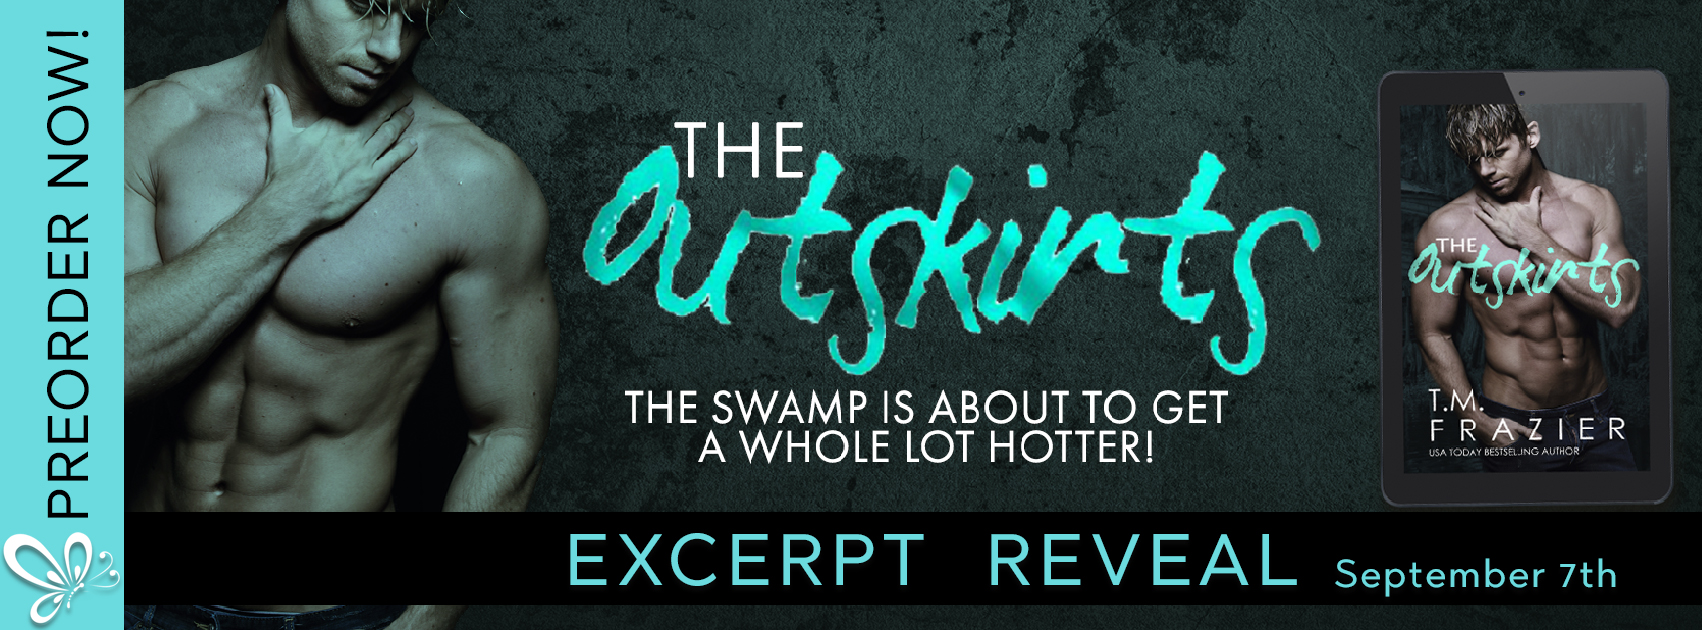 Excerpt Reveal: The Outskirts by T.M. Frazier